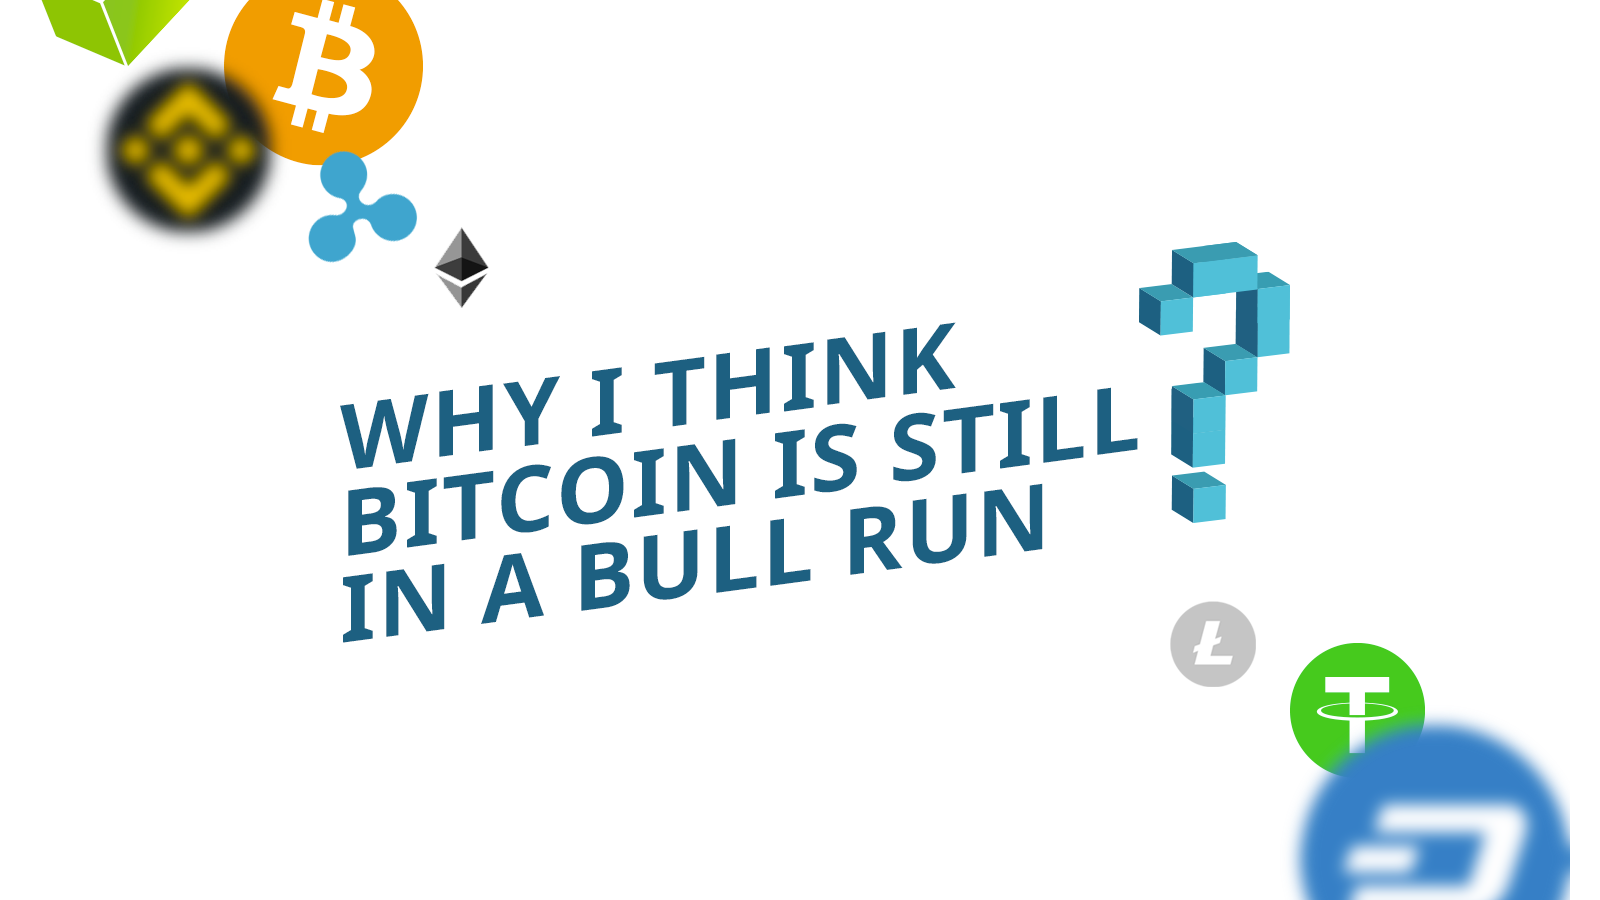 Why I think Bitcoin is still in a bull run, 'the double topcycle'